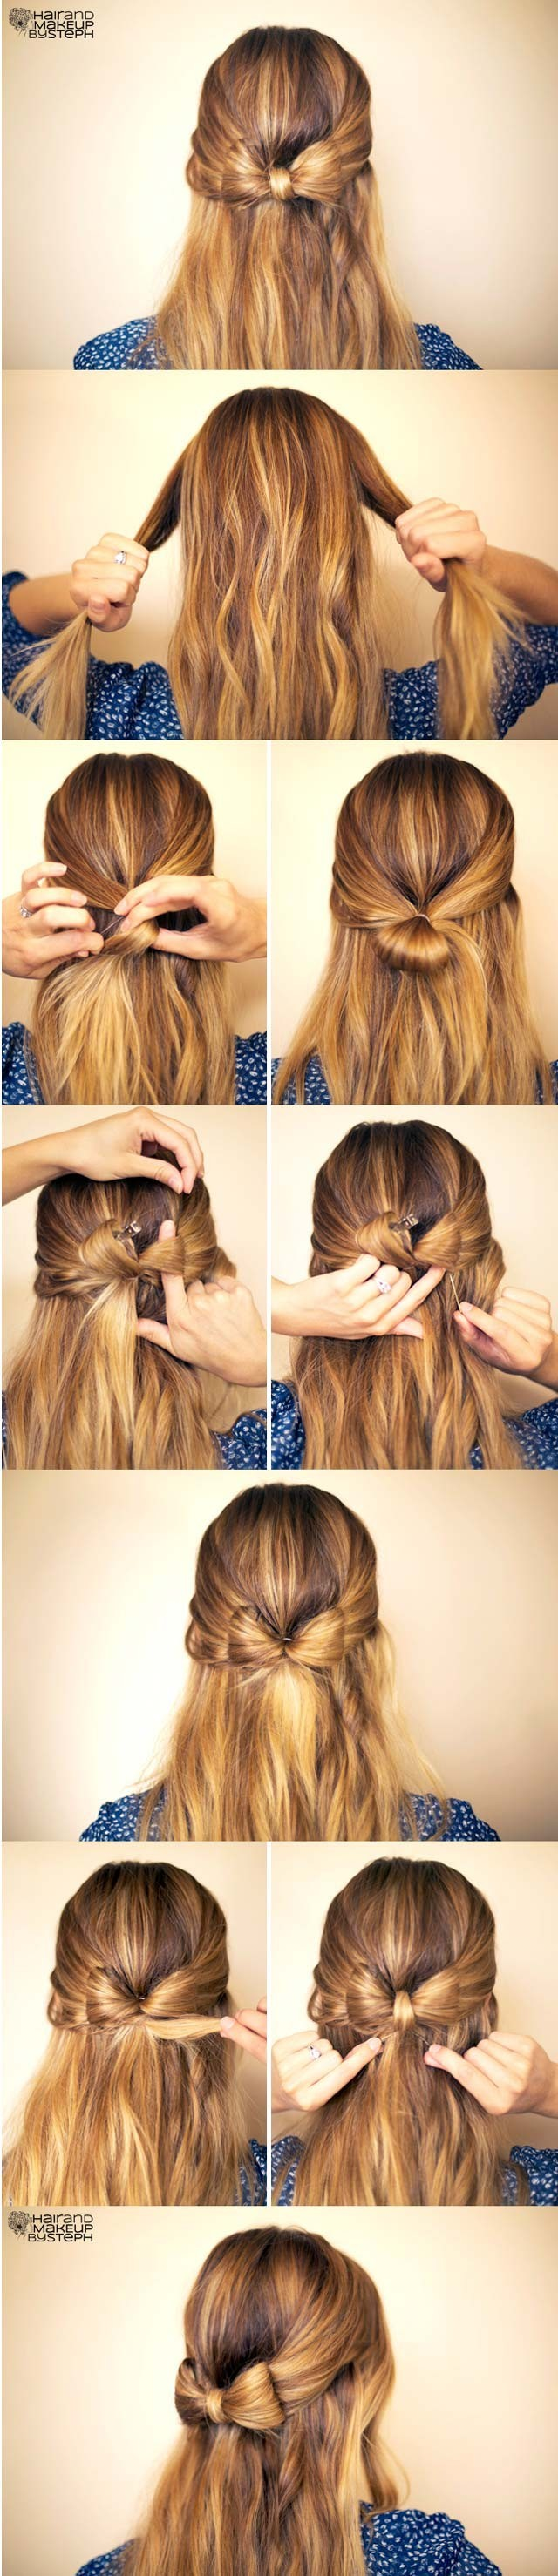 Enjoyable 15 Cute Hairstyles Step By Step Hairstyles For Long Hair Hairstyle Inspiration Daily Dogsangcom